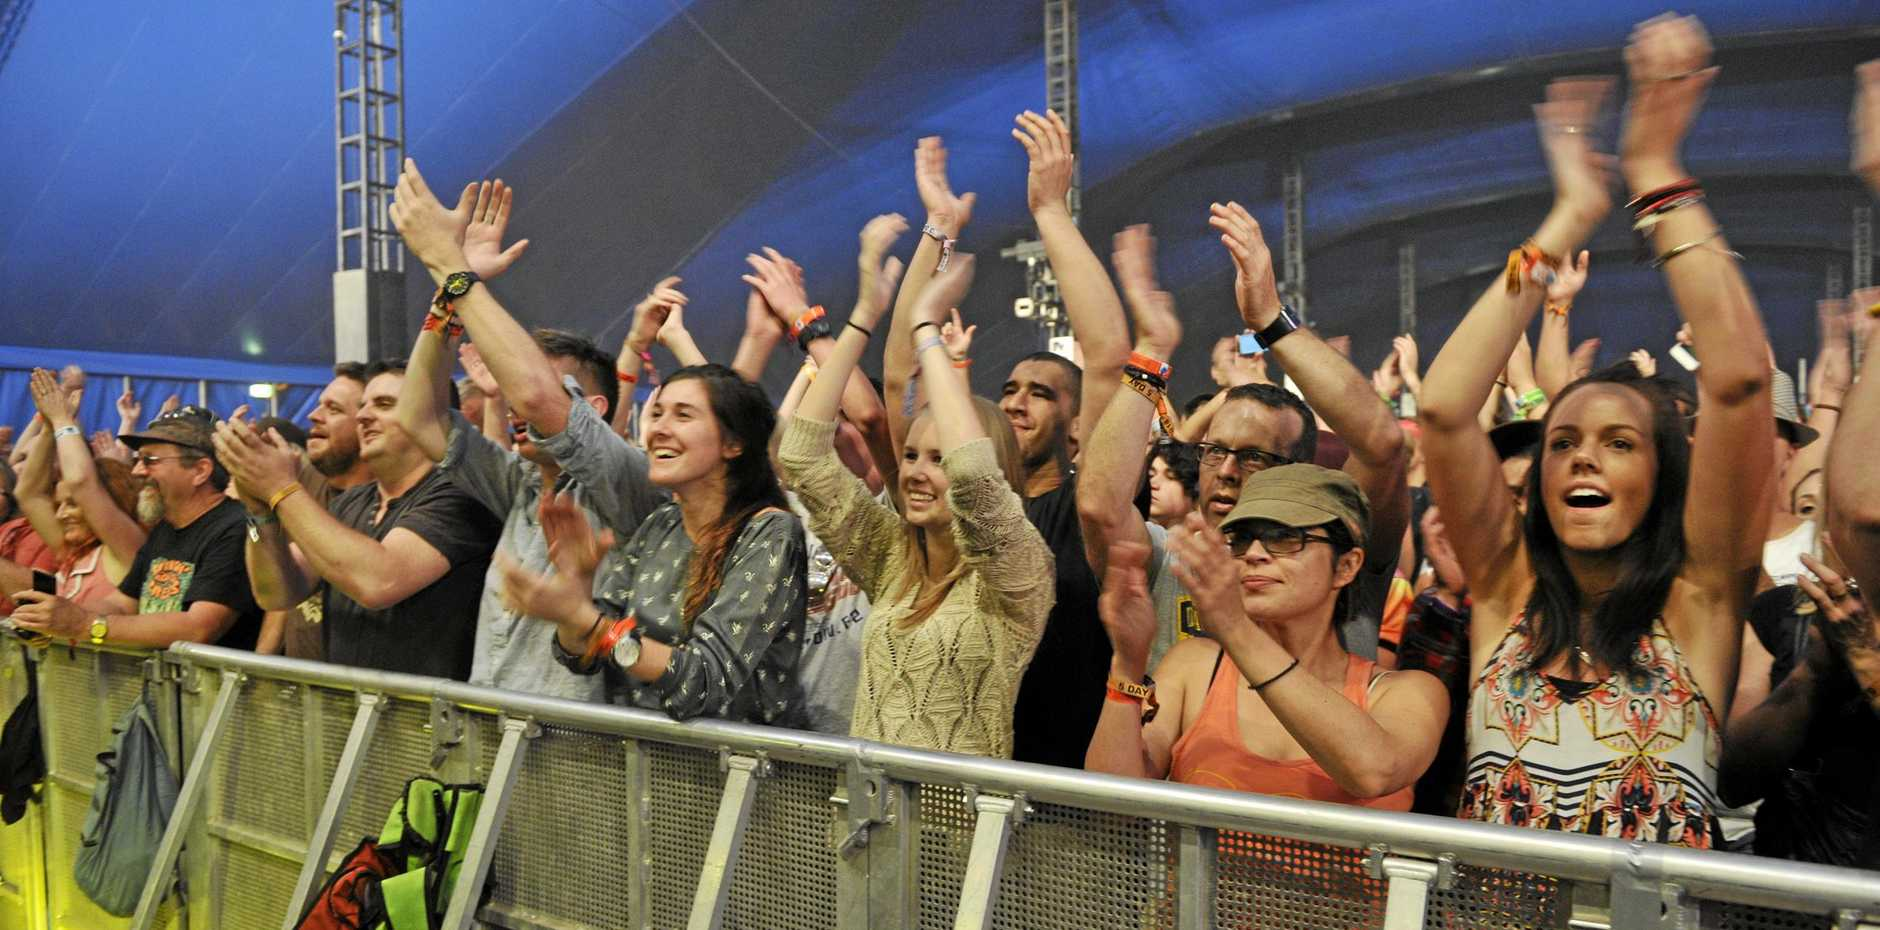 Crowds appeared to be having a blast on the third day of the 25th Annual Byron Bay Bluesfest held at Tyagarah near Byorn Bay, 2014.